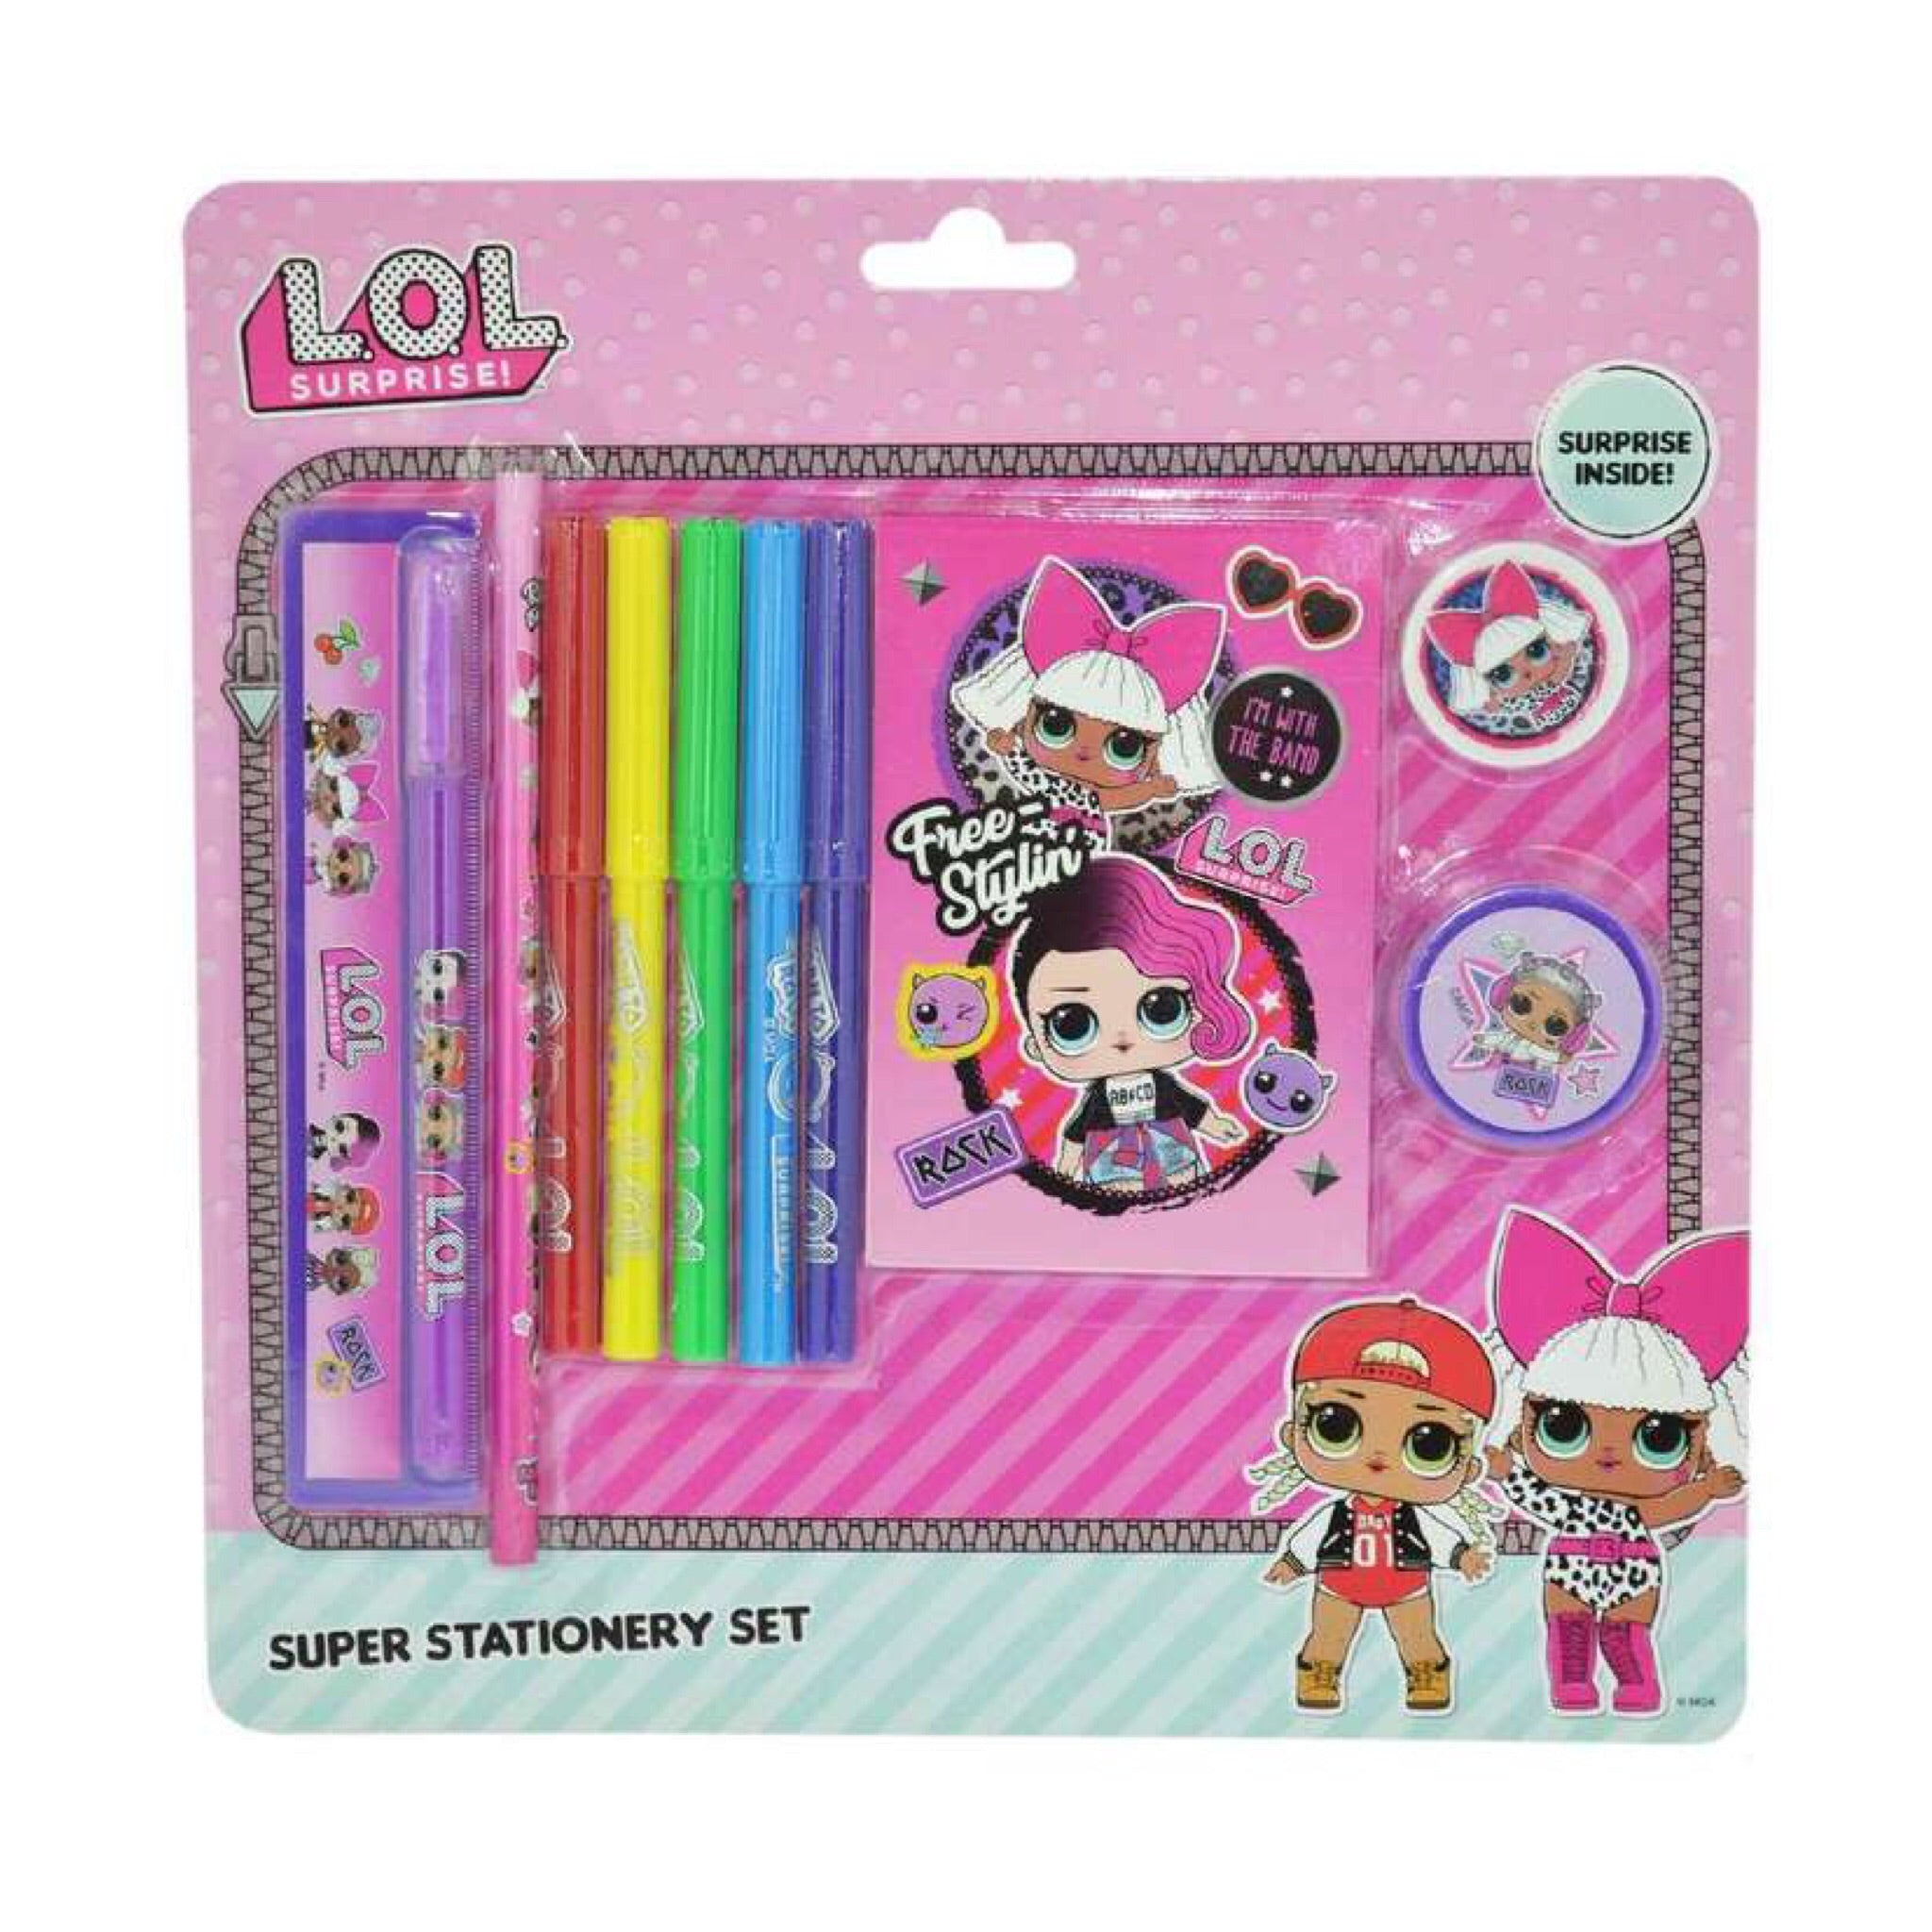 L.O.L Surprise Super Stationery Set